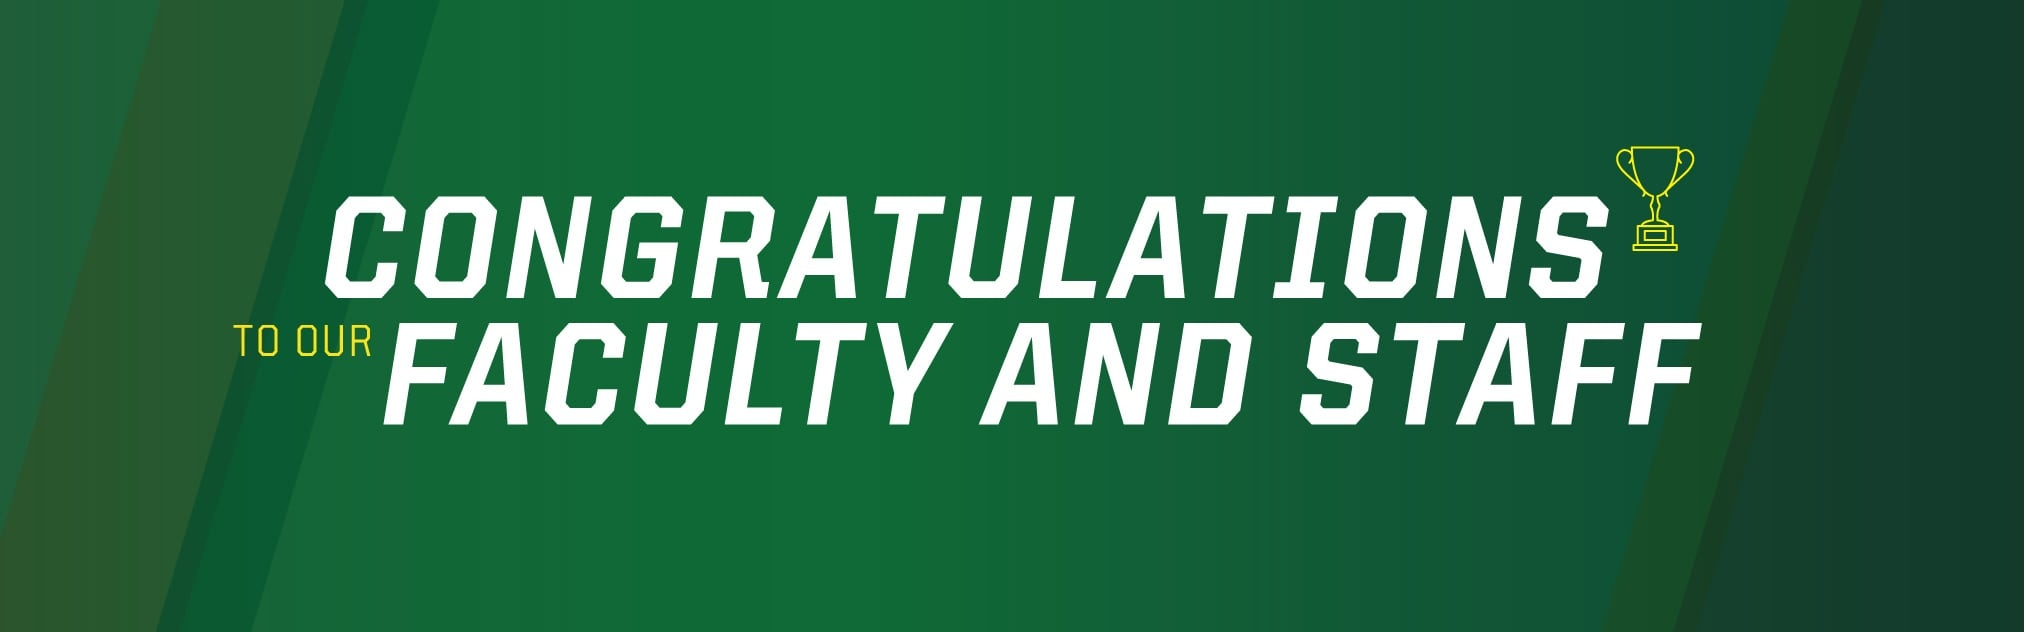 Congratulations to our faculty and staff in white against a green background